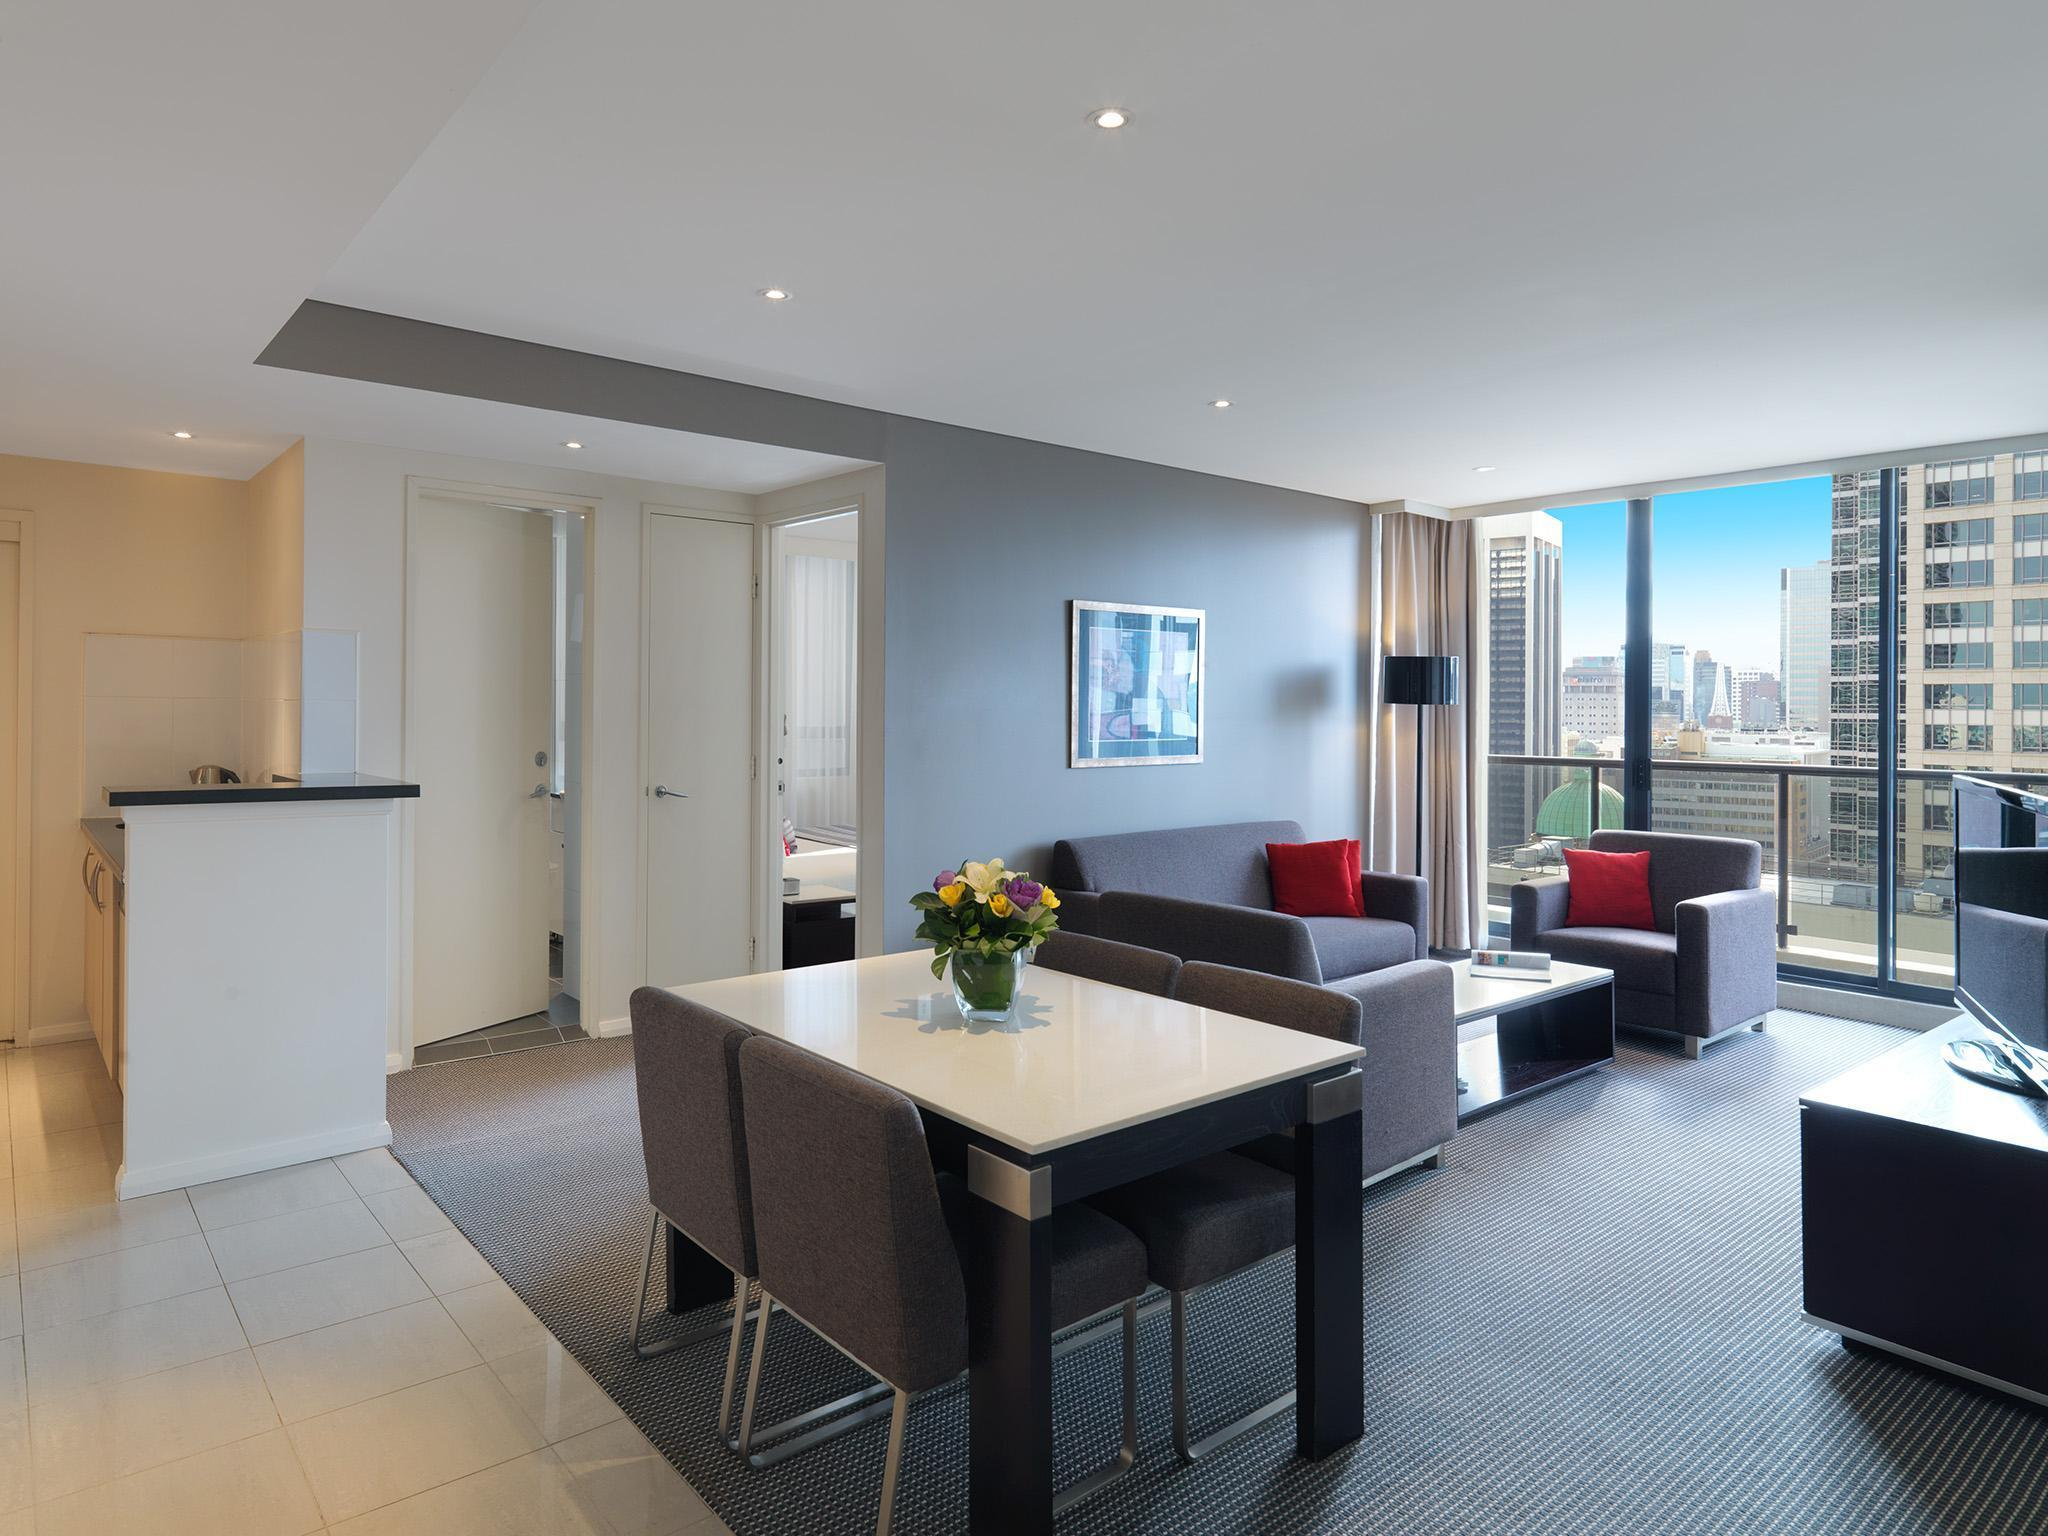 Best Price On Meriton Serviced Apartments Pitt Street In. The Square. Hotel Beau Rivage. Hotel Imperial. Hotel Keihan Universal Tower. Hefei Swan Lake Hotel. Hotel Cortese. Allezboo Beach Resort And Spa. Palace Hotel